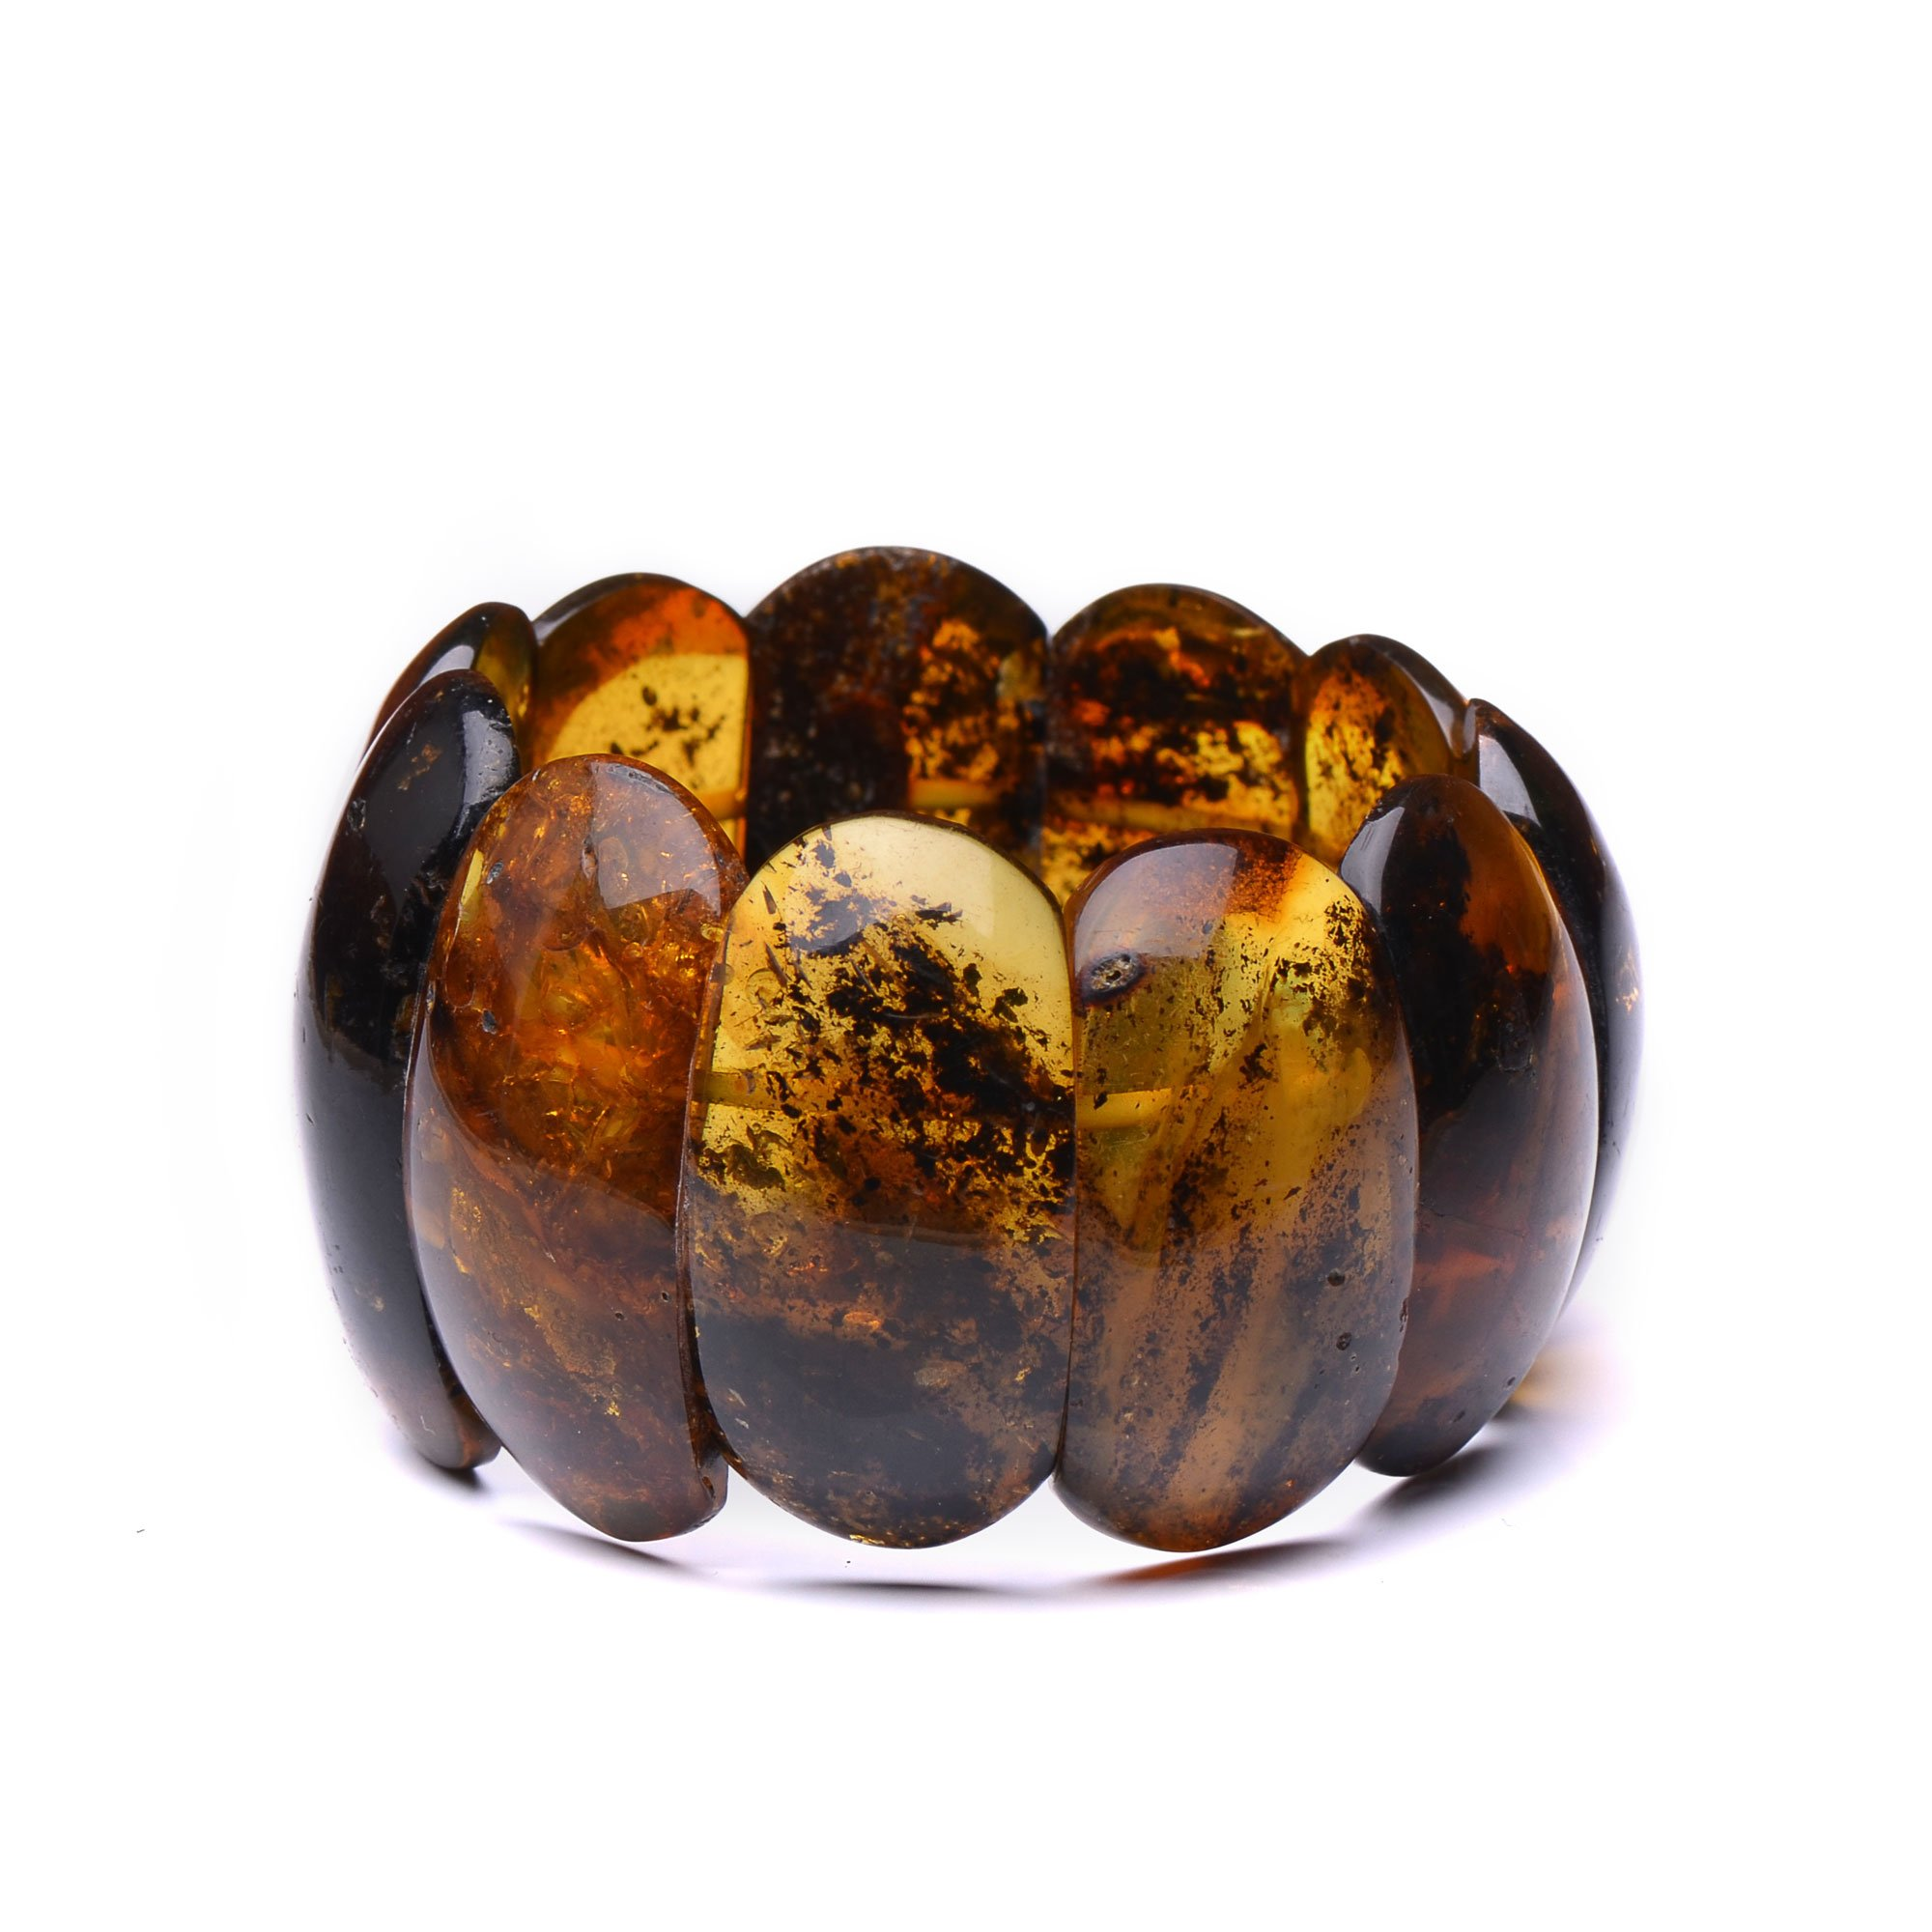 Massive and Unique Amber Bracelet for Woman - Genuine Baltic Amber - Certified 100% Genuine Amber Pieces